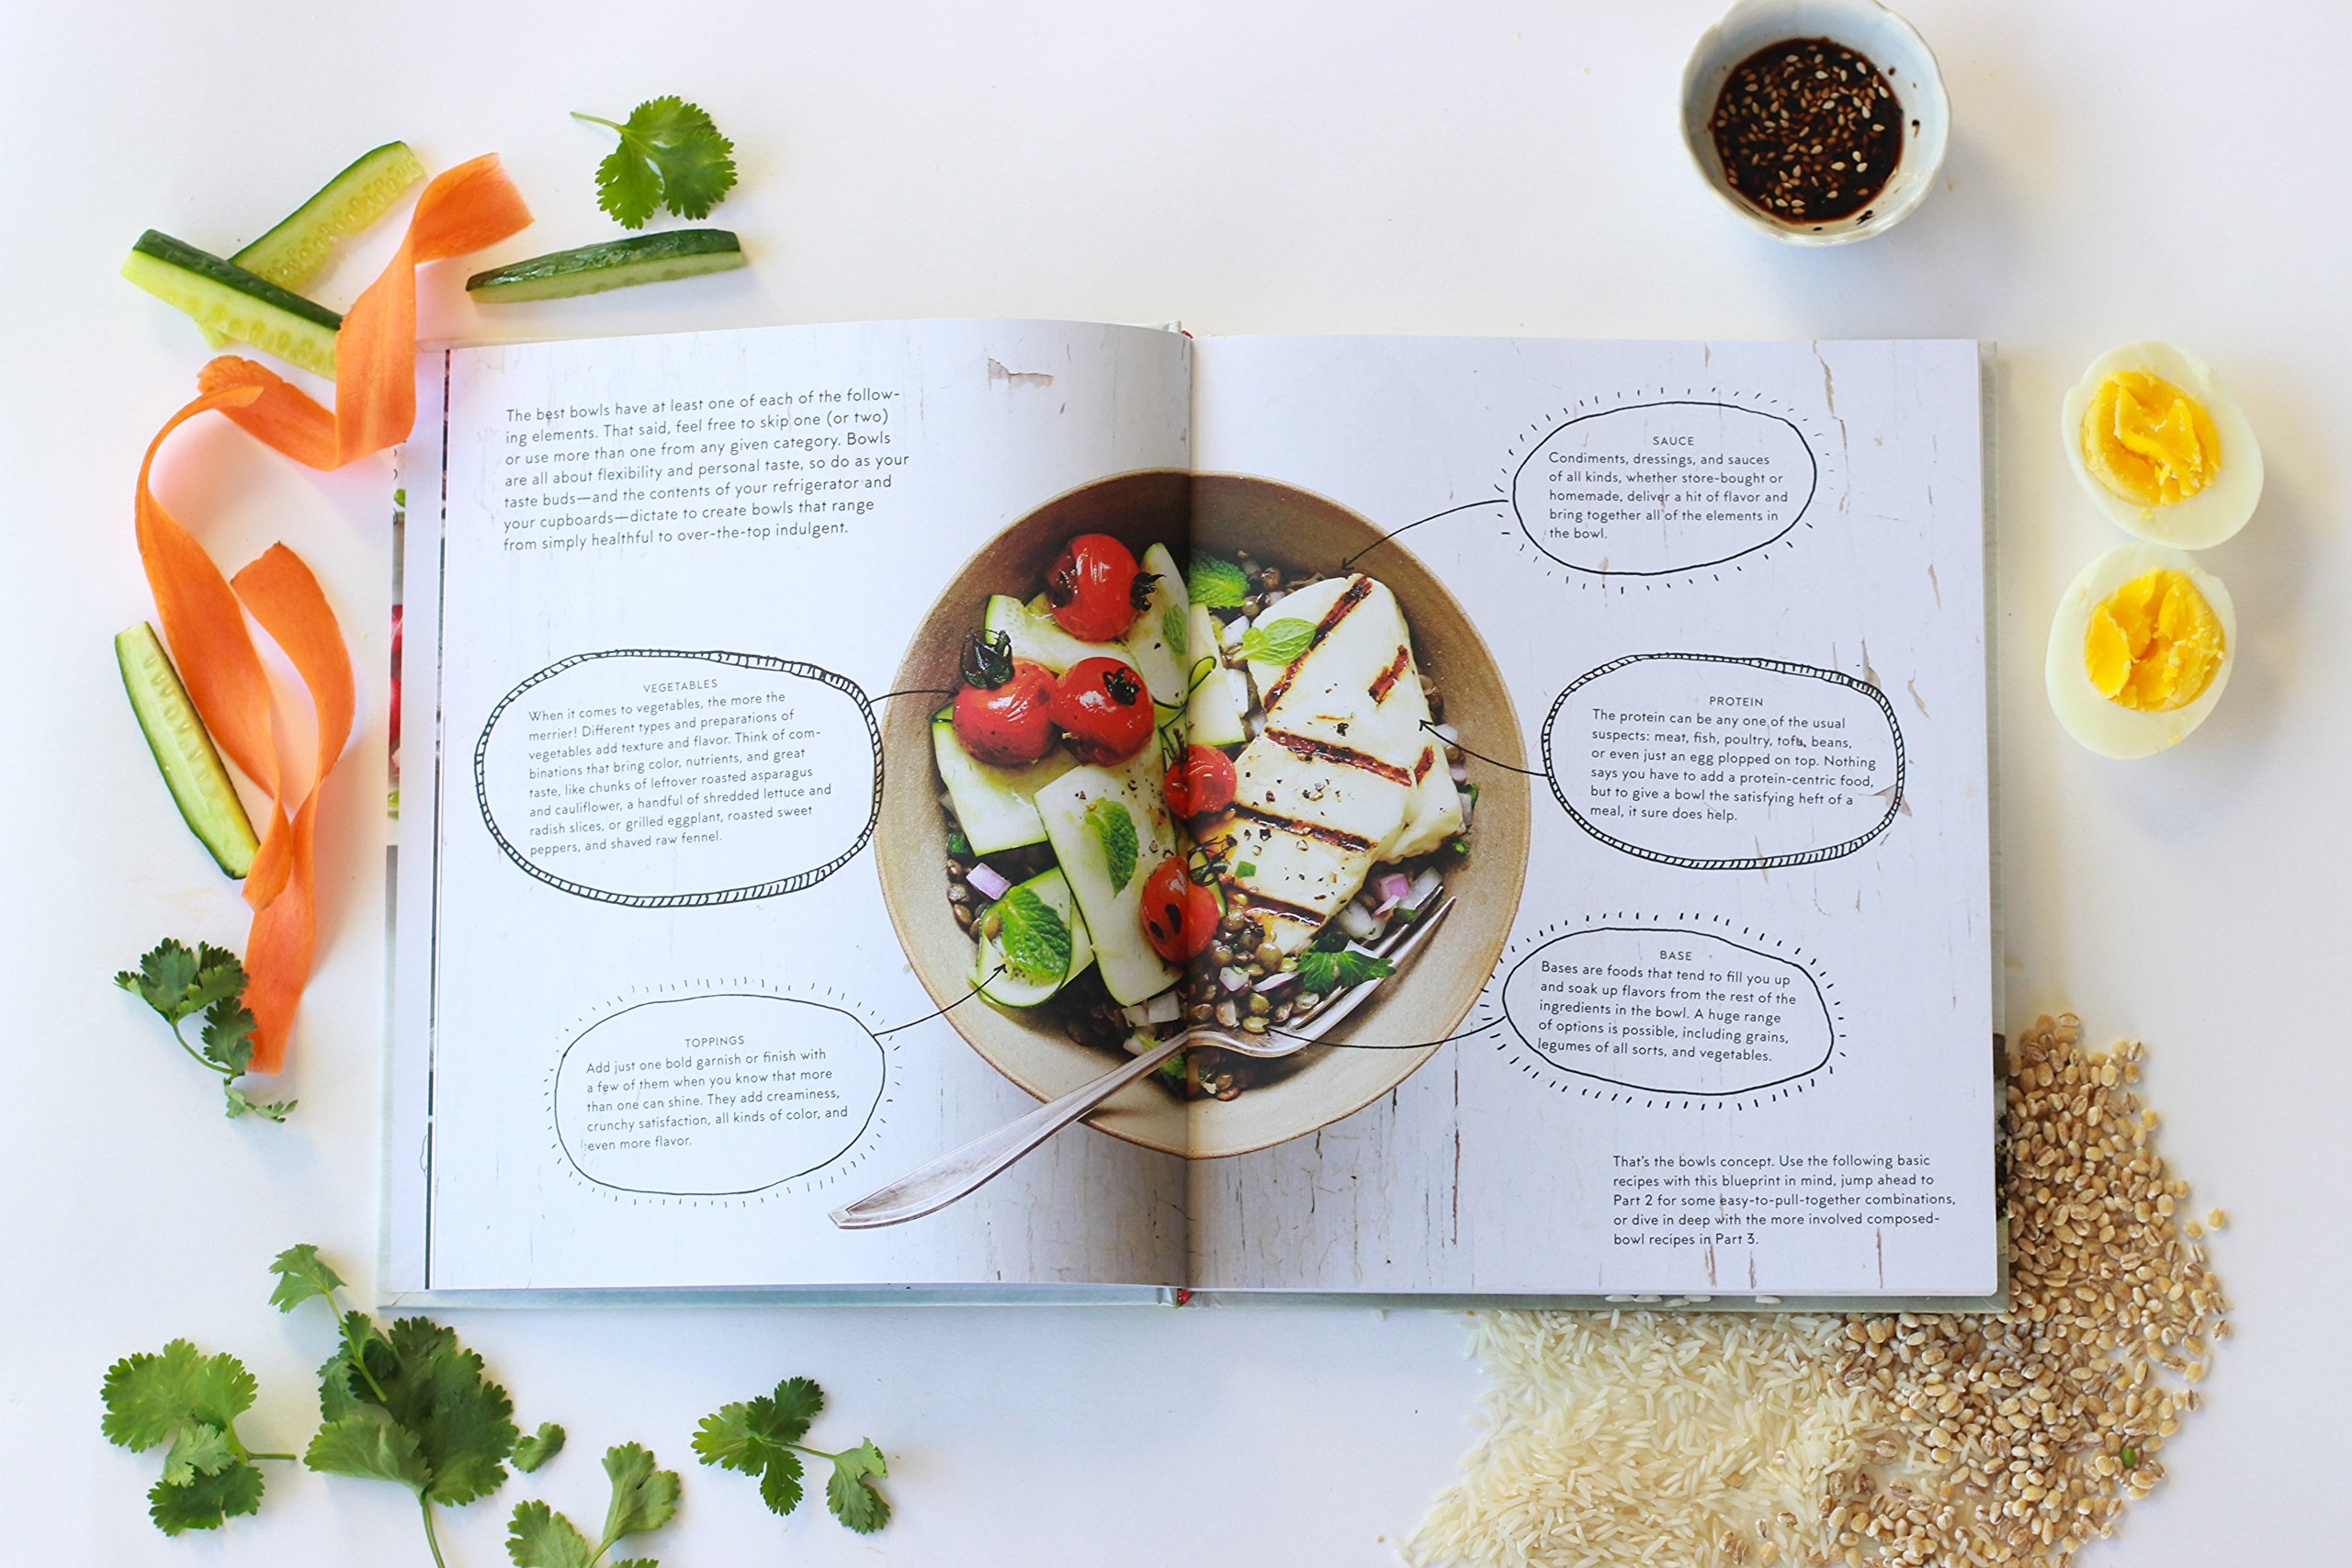 Bowls recipes and inspirations for healthful one dish meals molly recipes and inspirations for healthful one dish meals molly watson nicole franzen 9781452156194 amazon books forumfinder Gallery